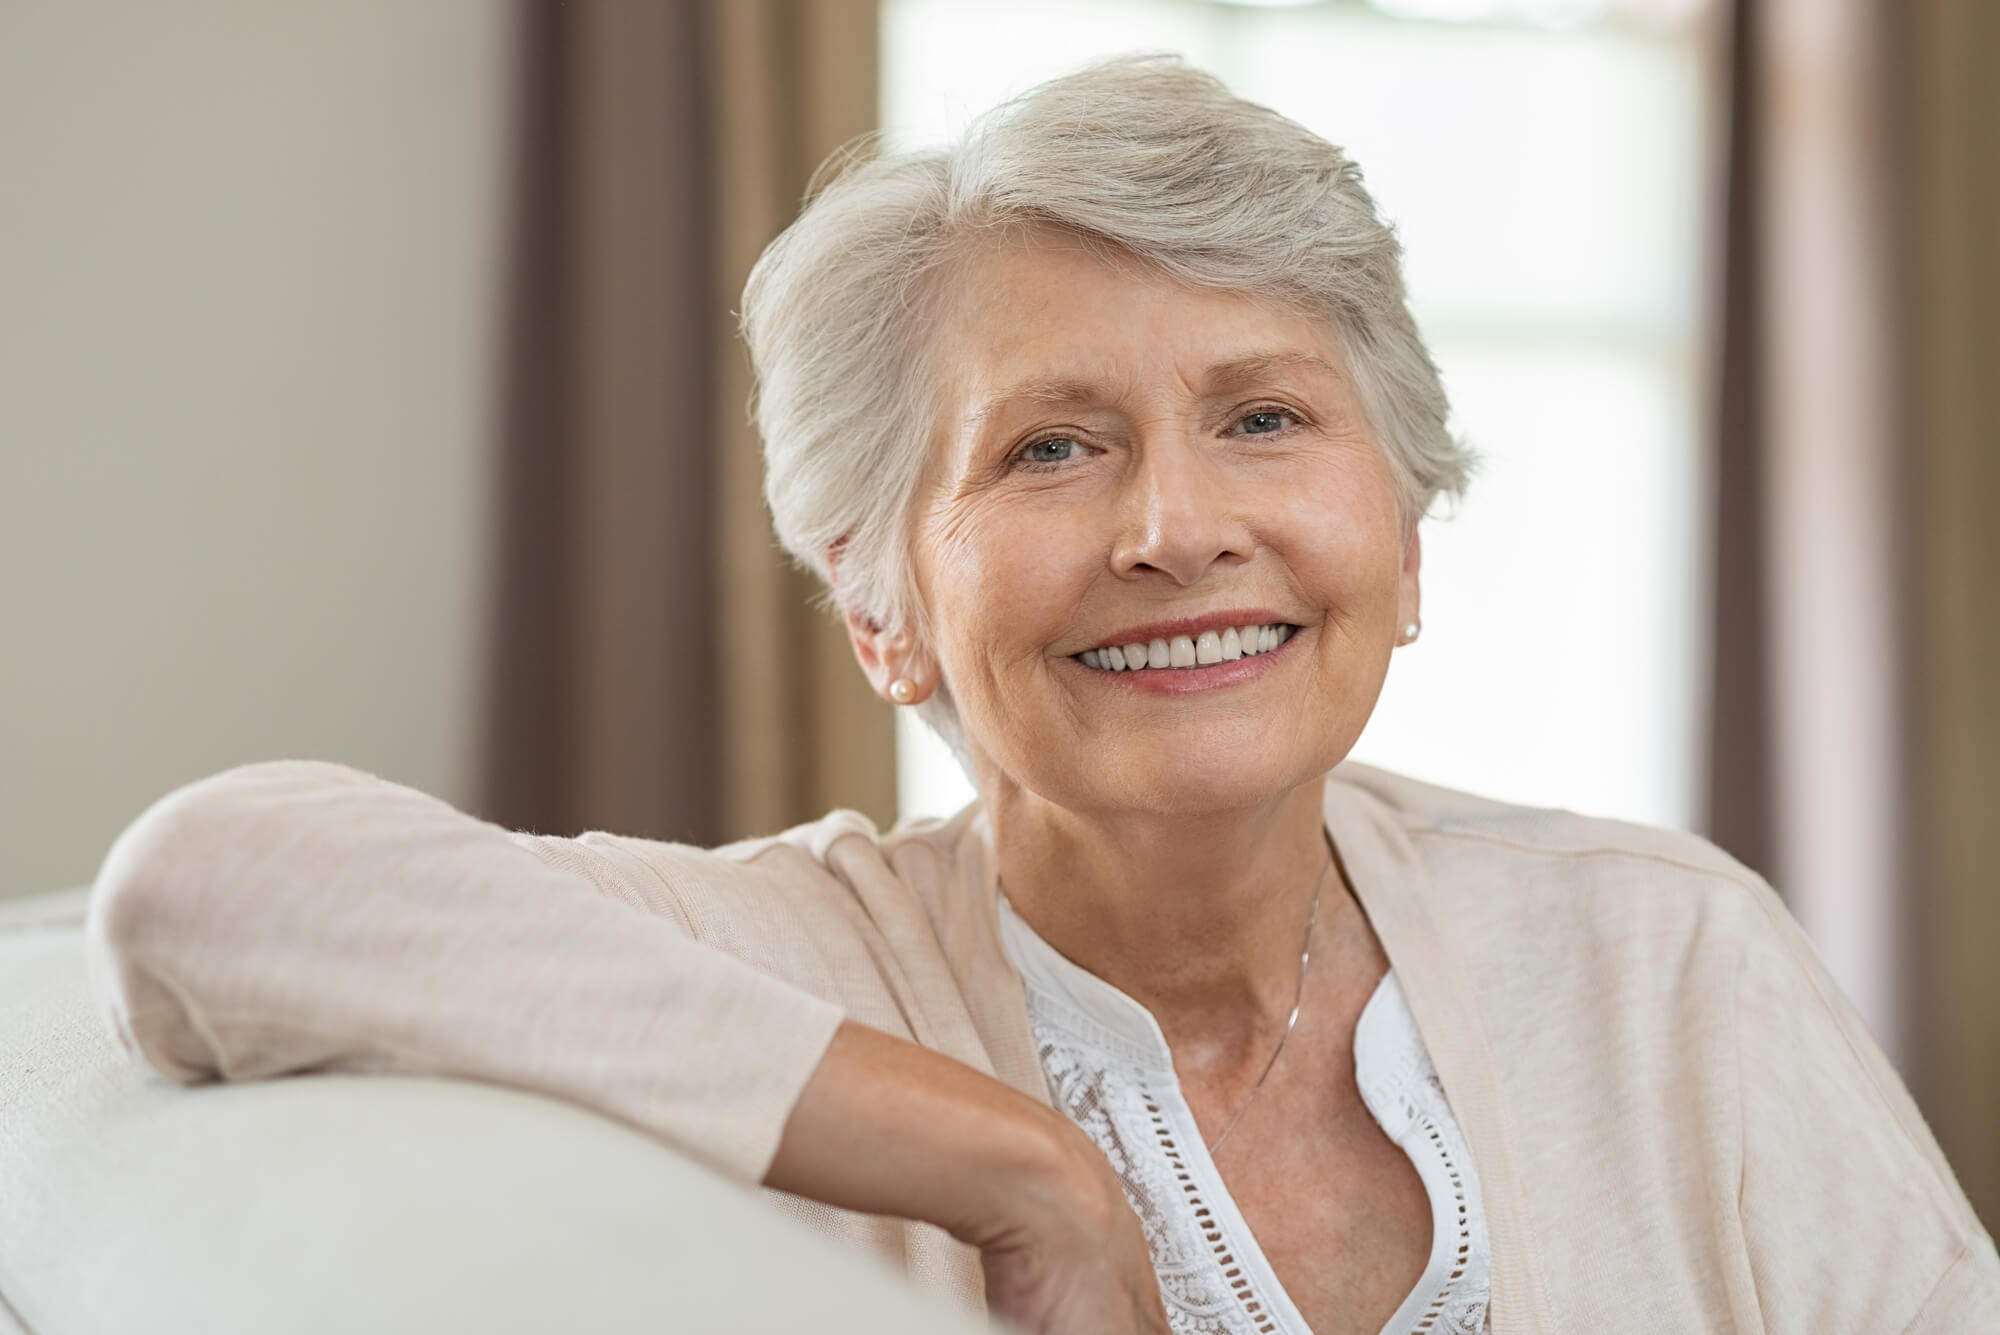 where to get good dentures in west palm beach